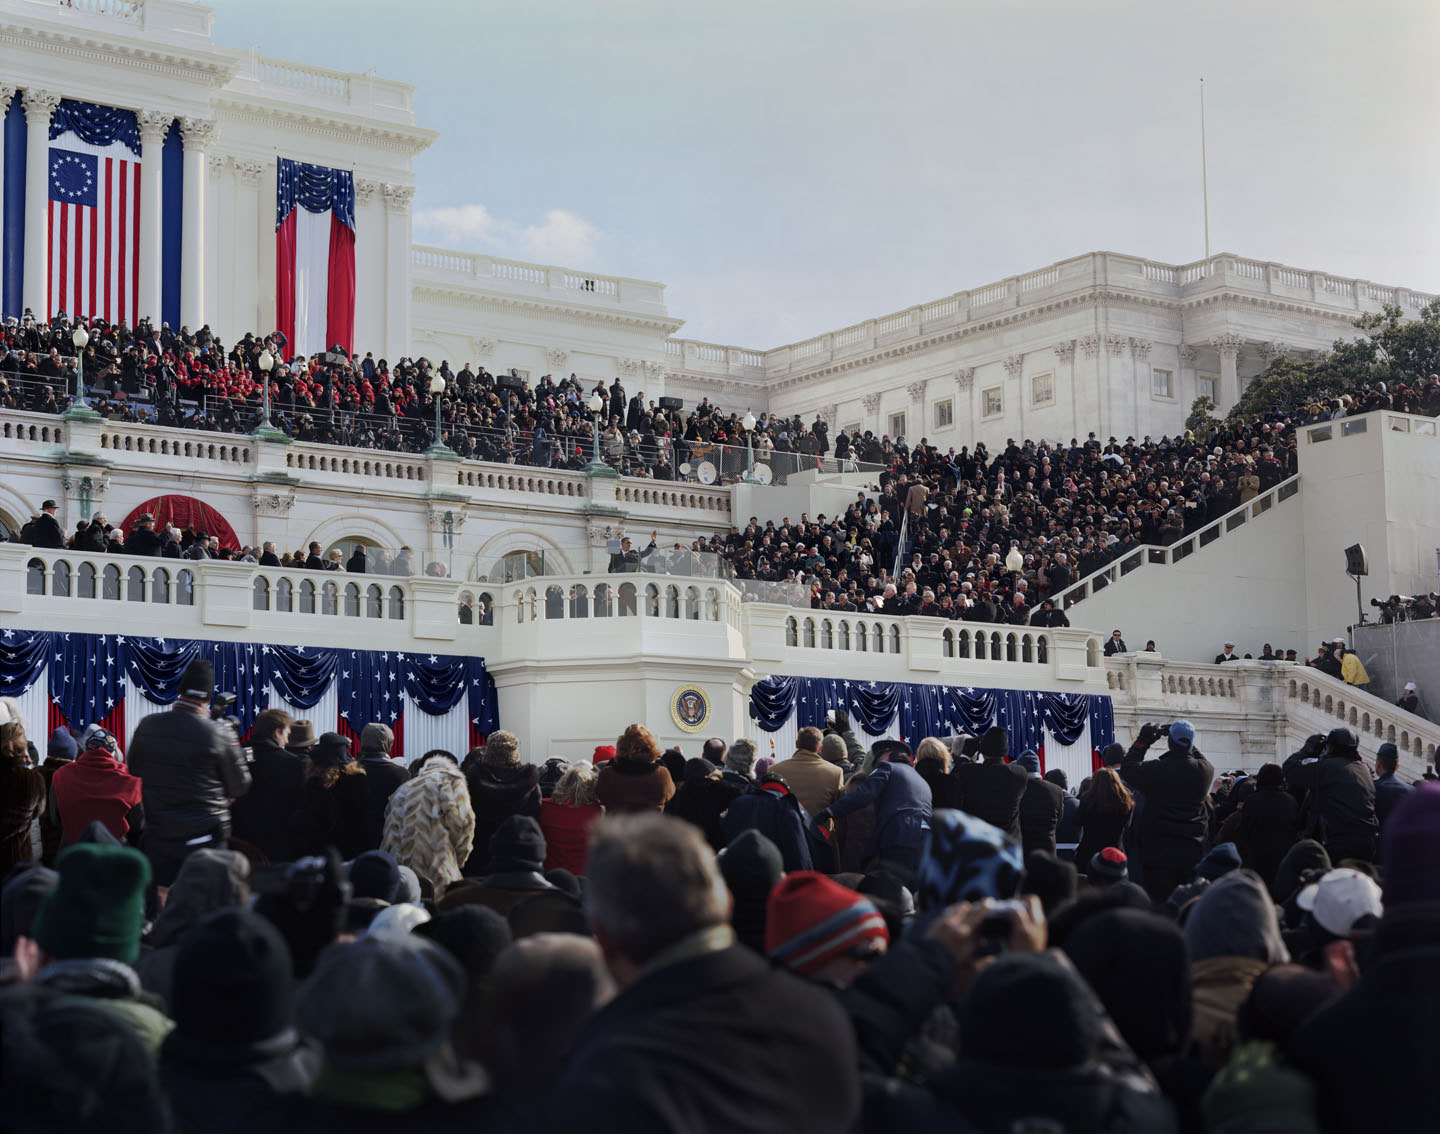 Obama Inauguration (After Swearing In)